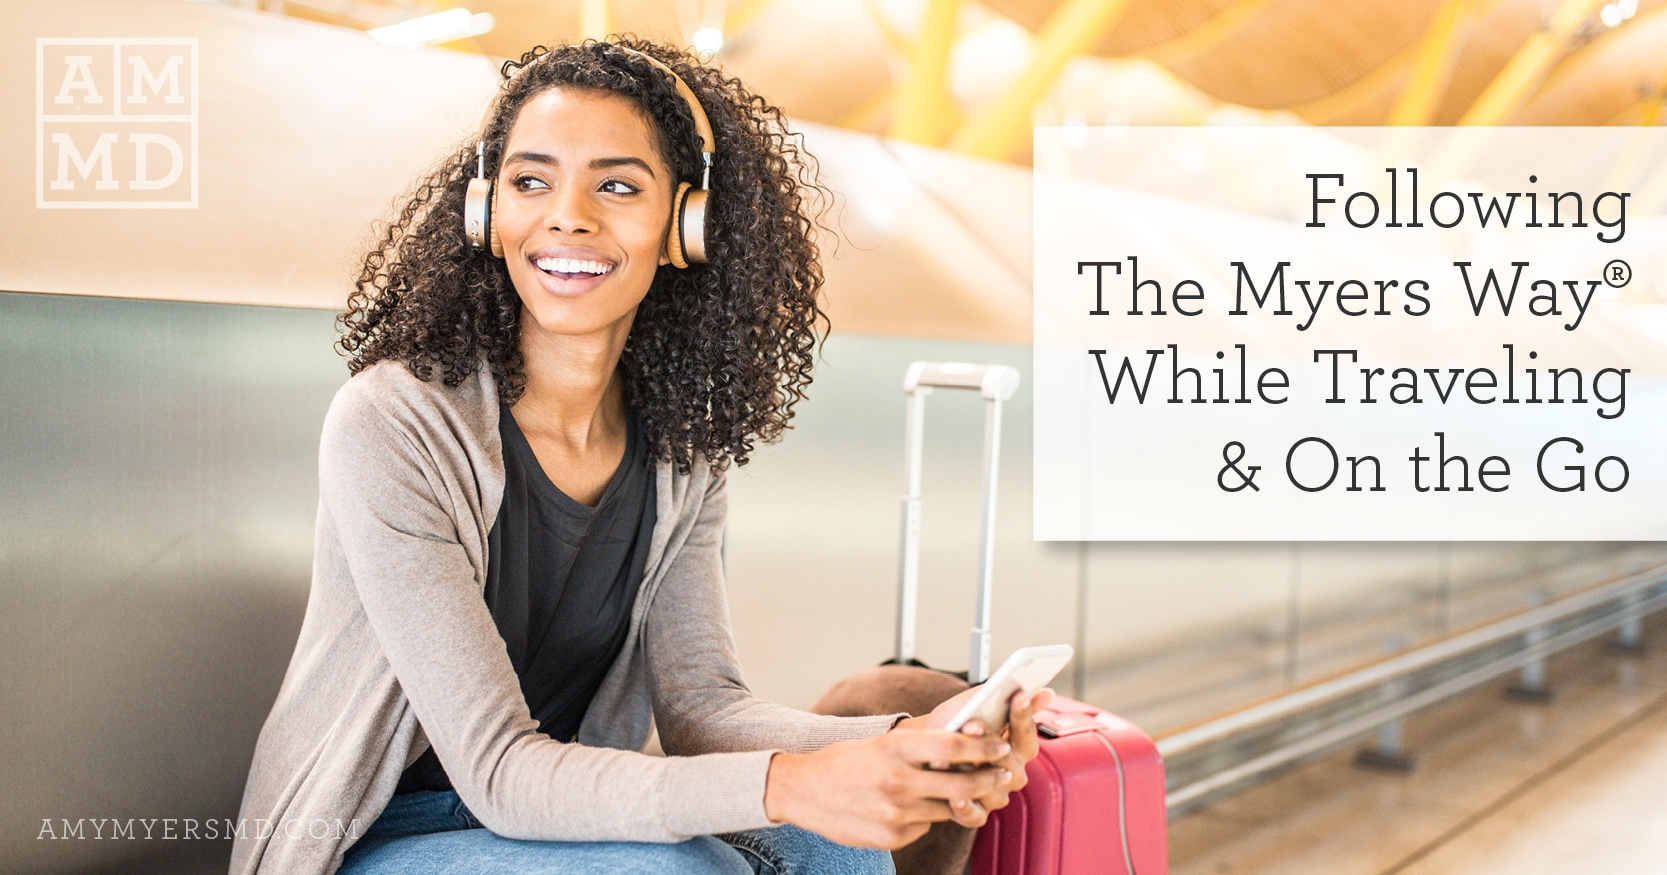 Following The Myers Way® While Traveling & On the Go - A Woman Sitting in the Airport - Featured Image - Amy Myers MD